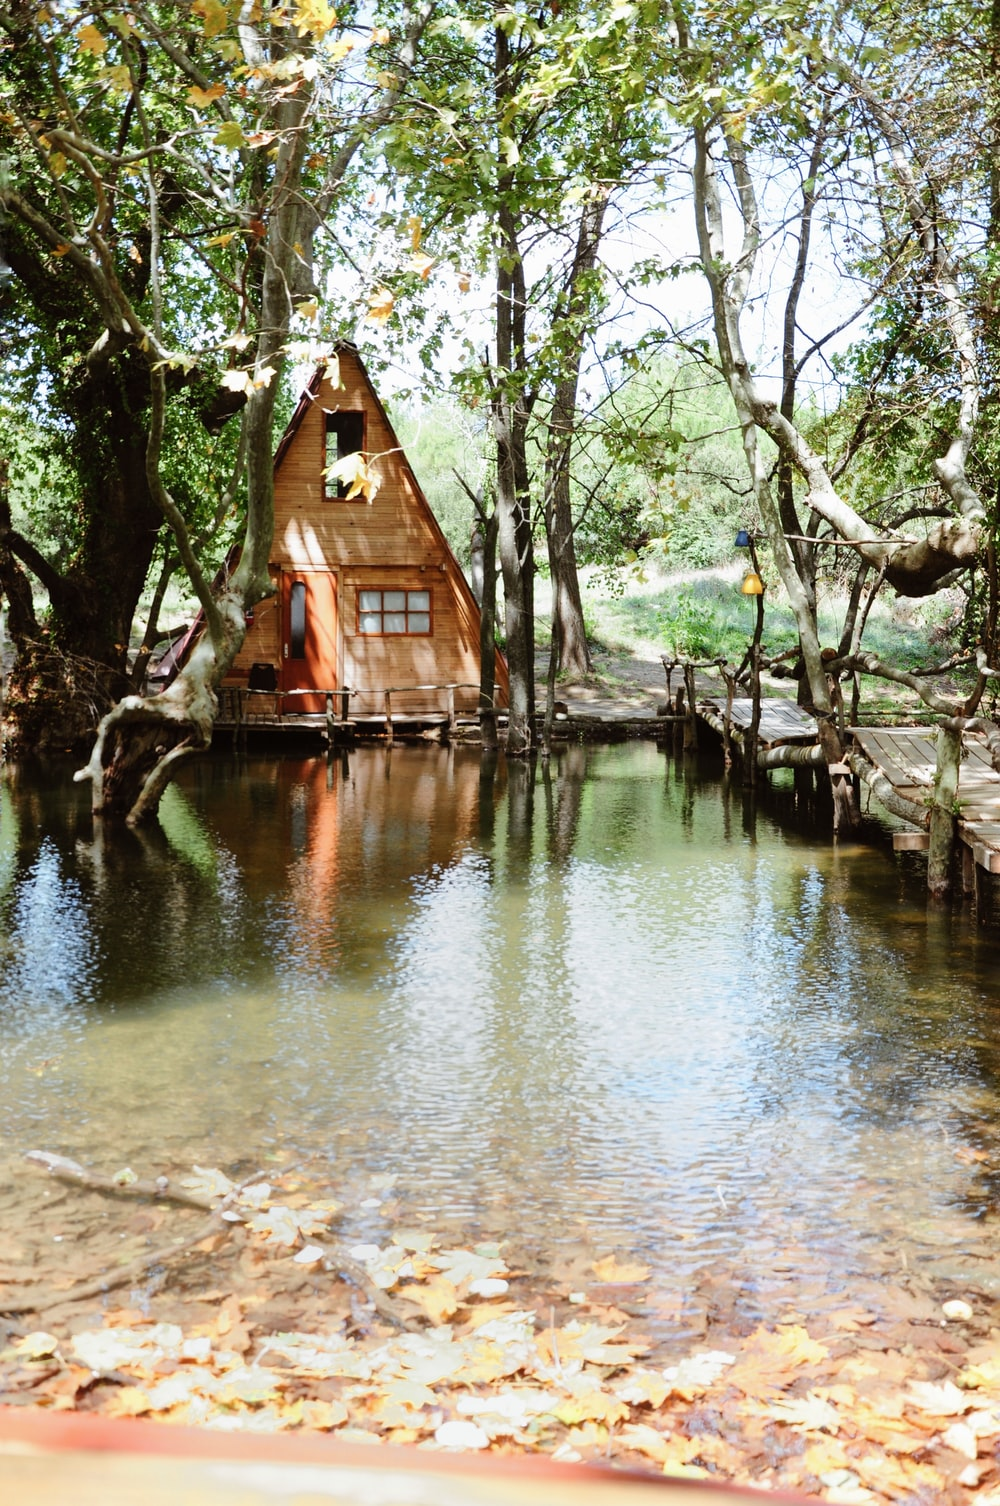 brown wooden house on river bank during daytime